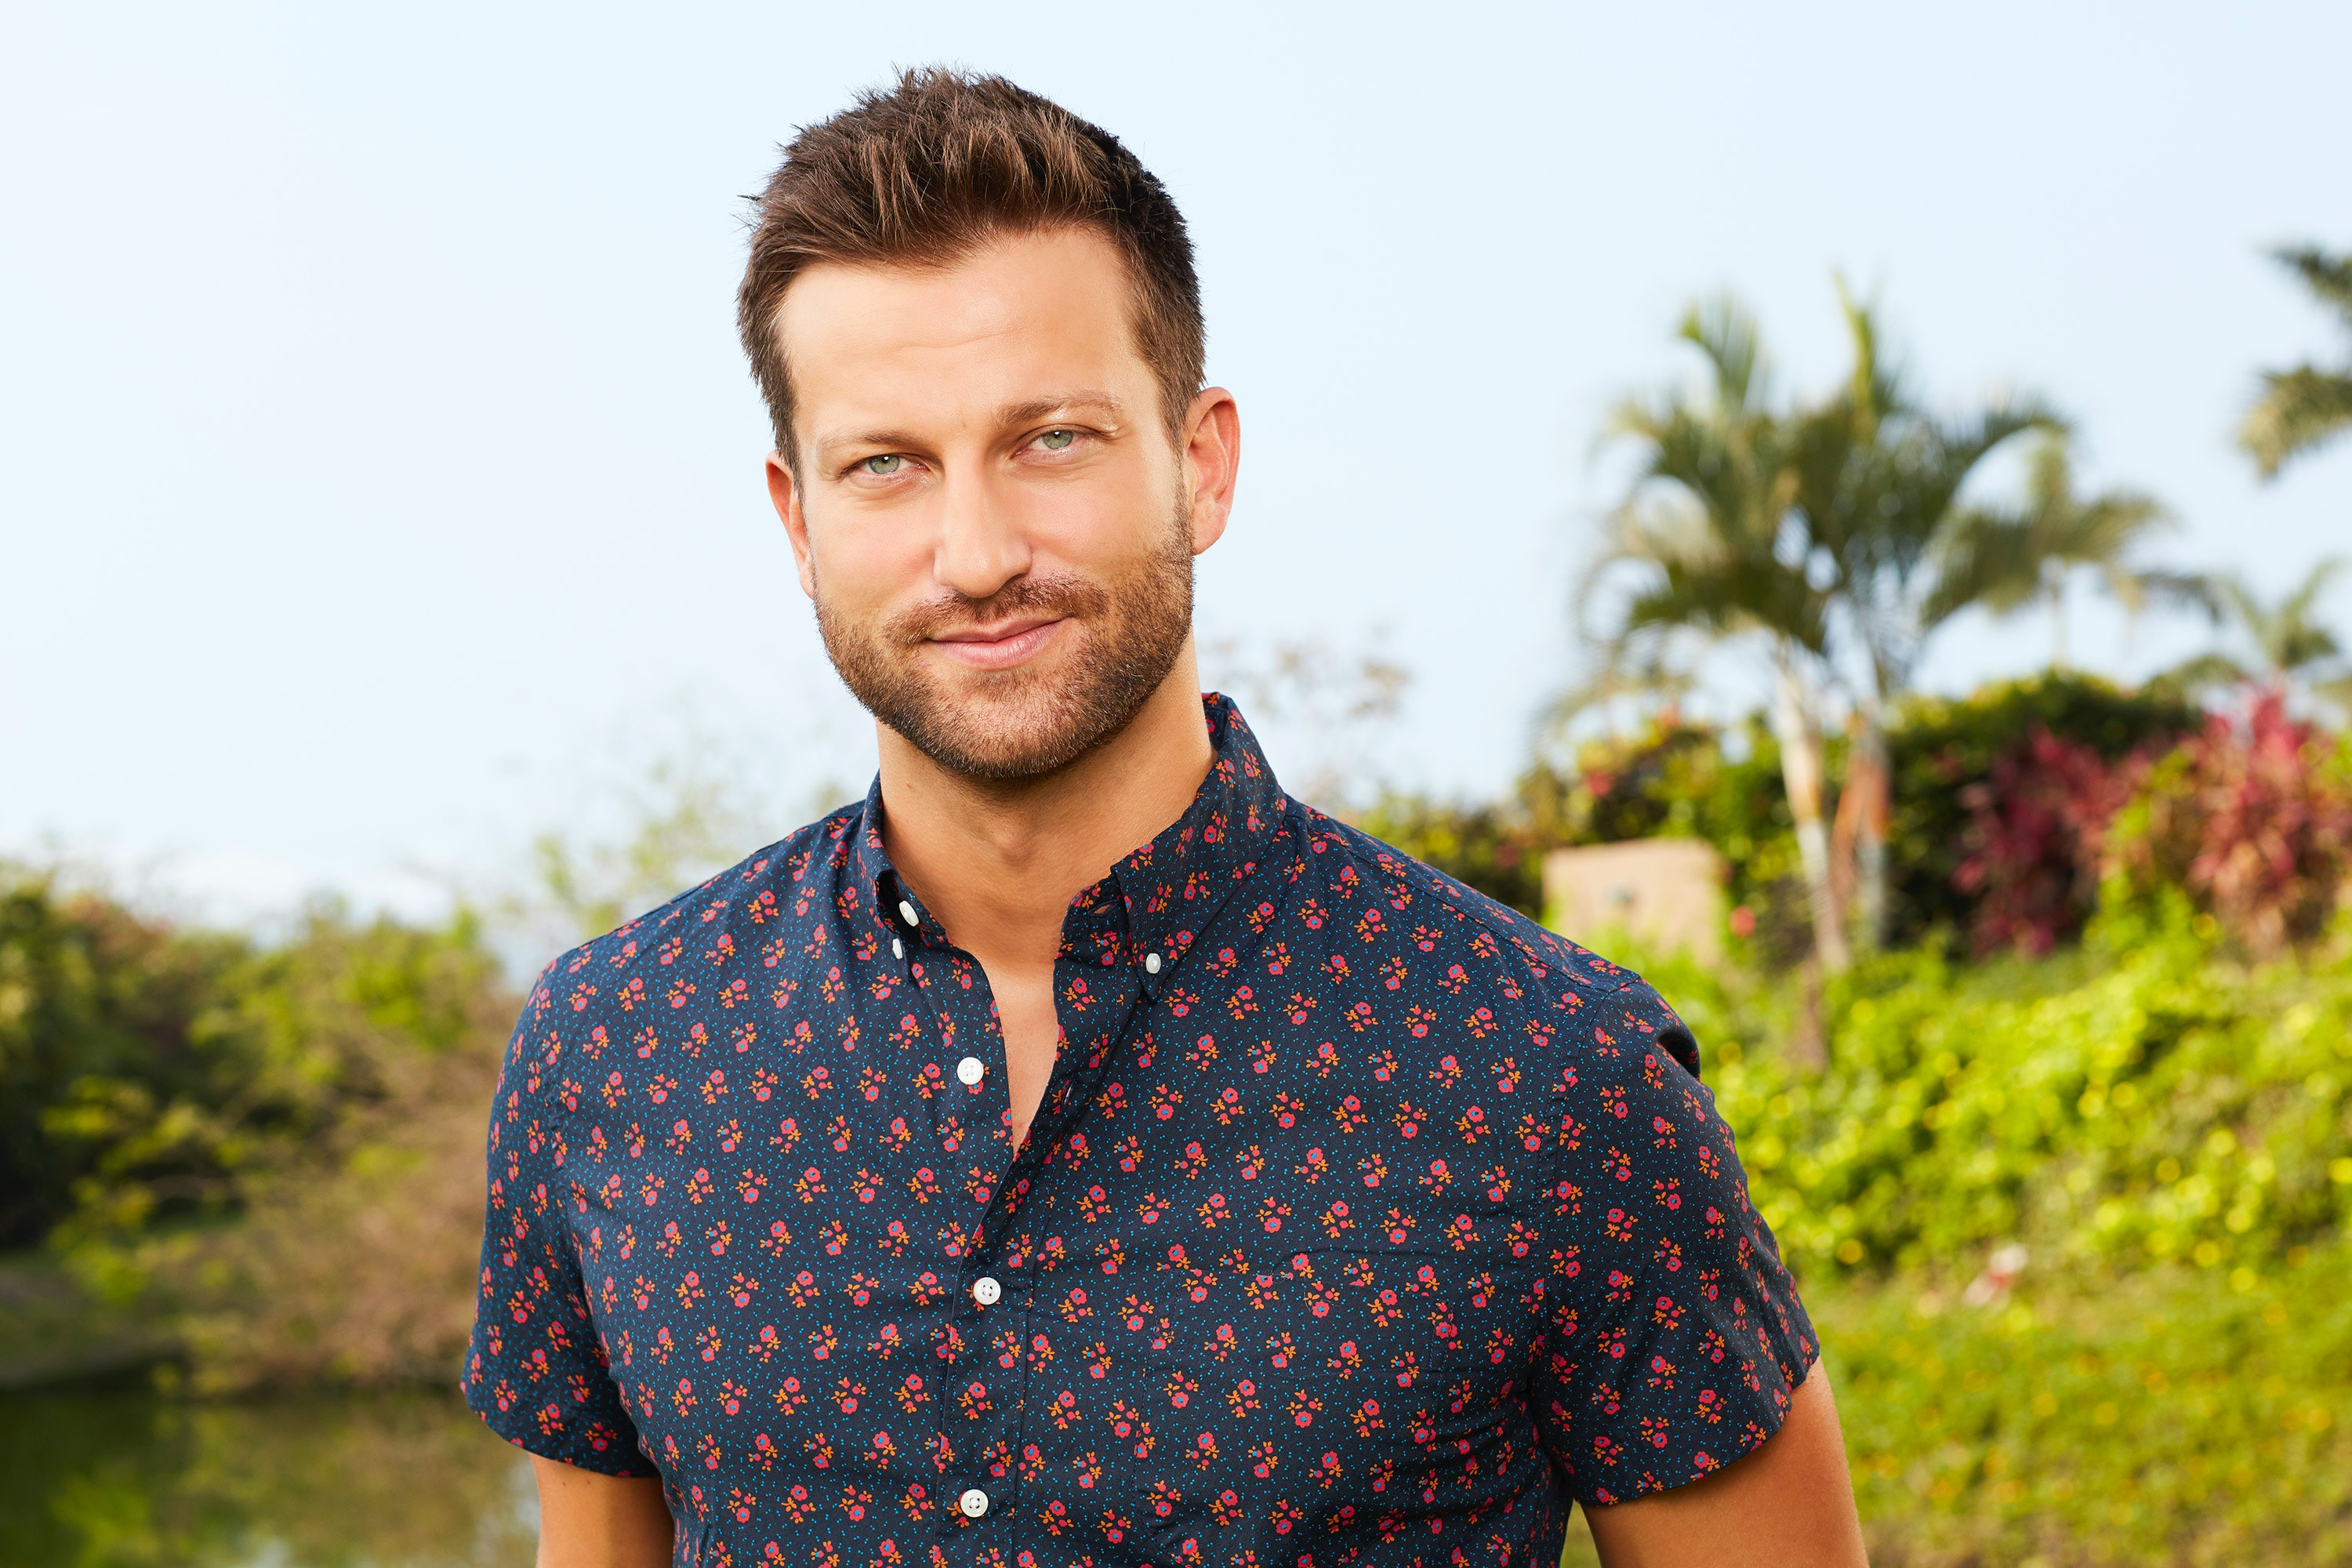 Who is emily the bachelorette hookup now